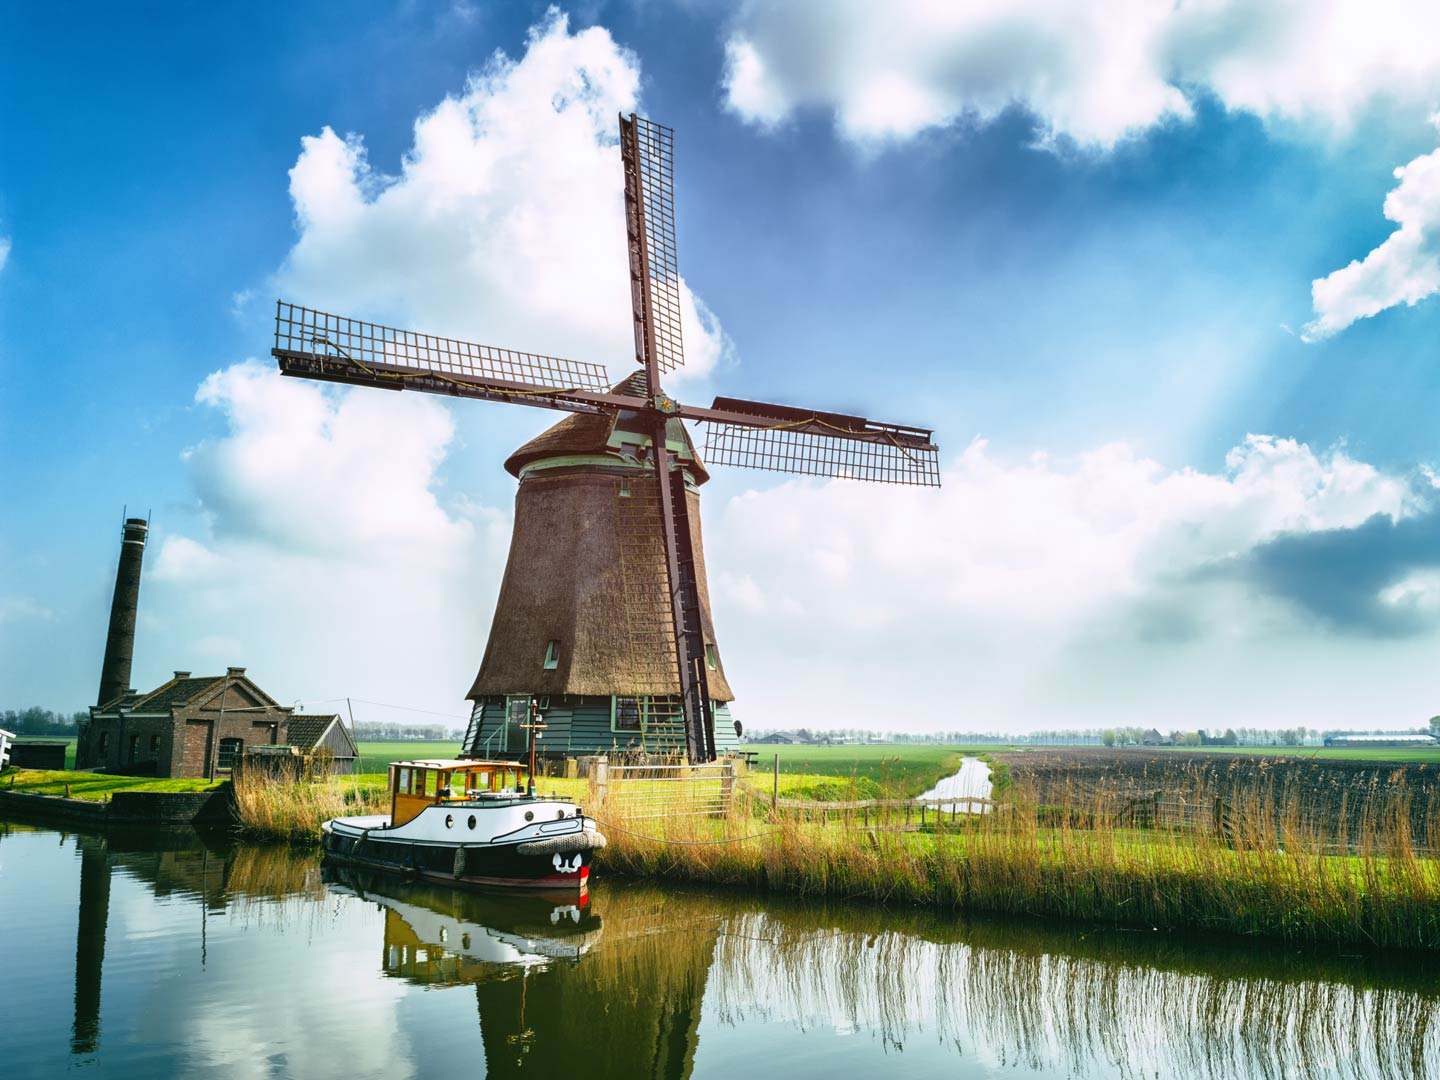 A boat on the waters of the Netherlands overlooking a big windmill